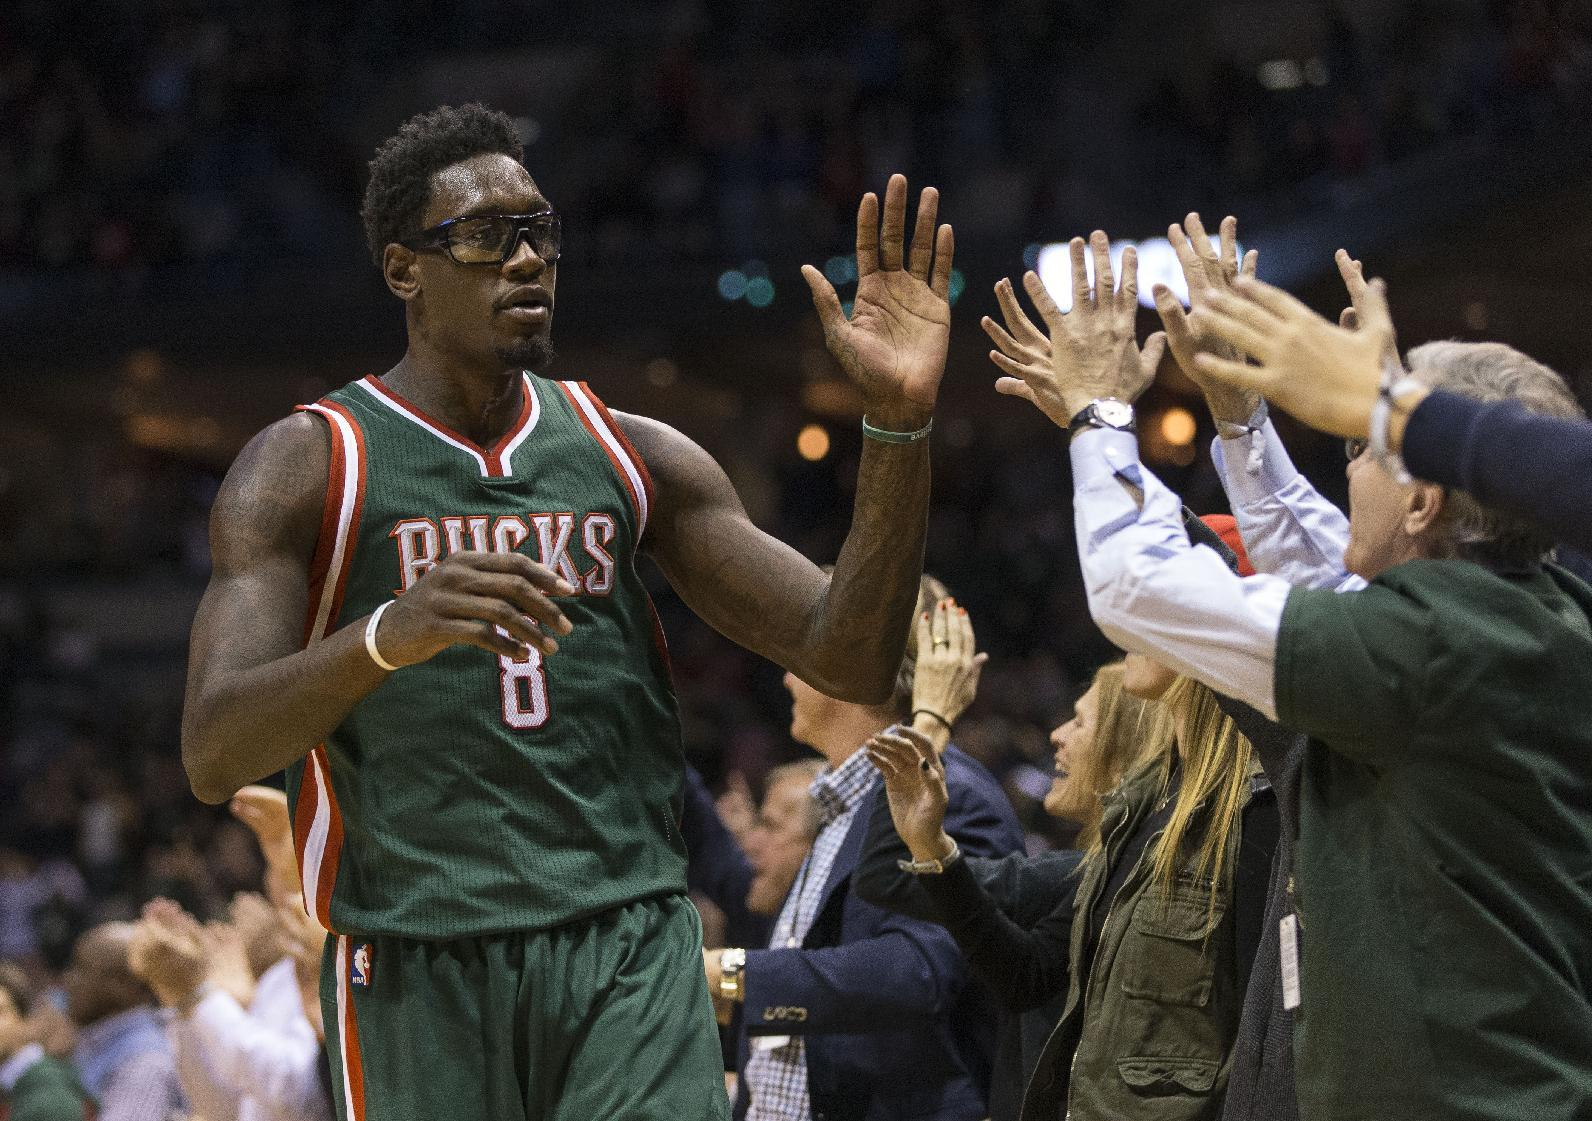 Larry Sanders explains his exit from the NBA: 'Right now [...] it's not there for me'